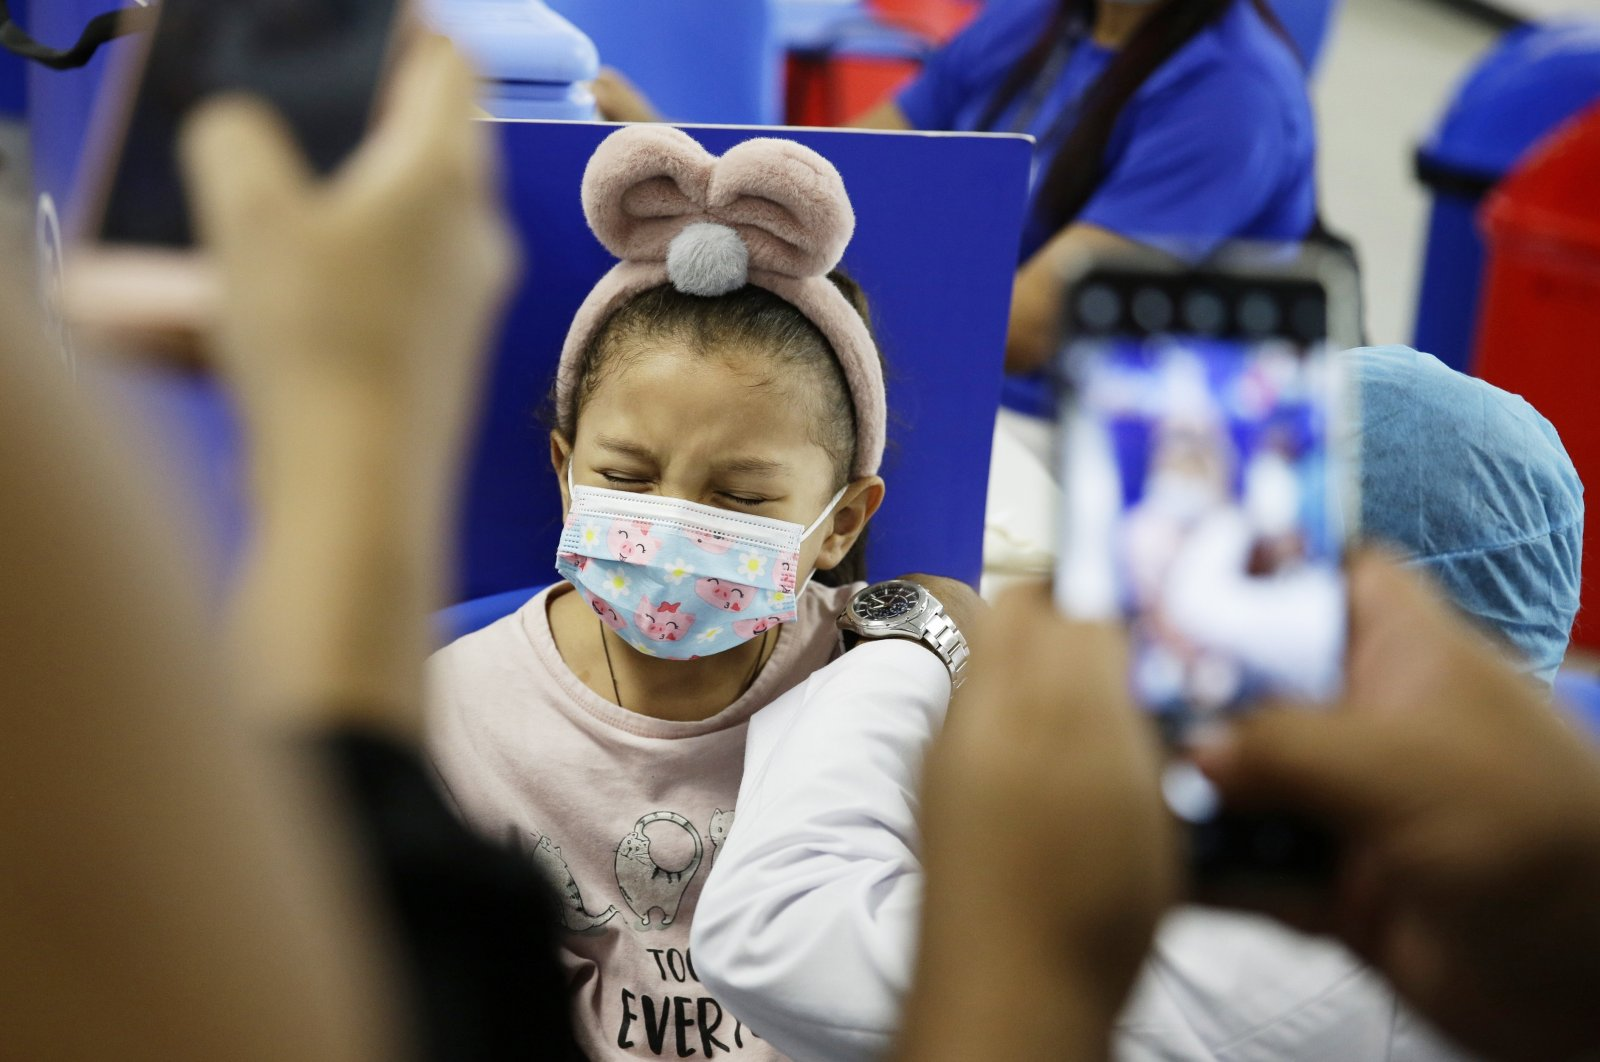 A child reacts as he receives the first dose of vaccine against COVID-19, at the vaccination center of Hospital El Salvador, in San Salvador, El Salvador, Sept. 22, 2021. (EPA Photo)